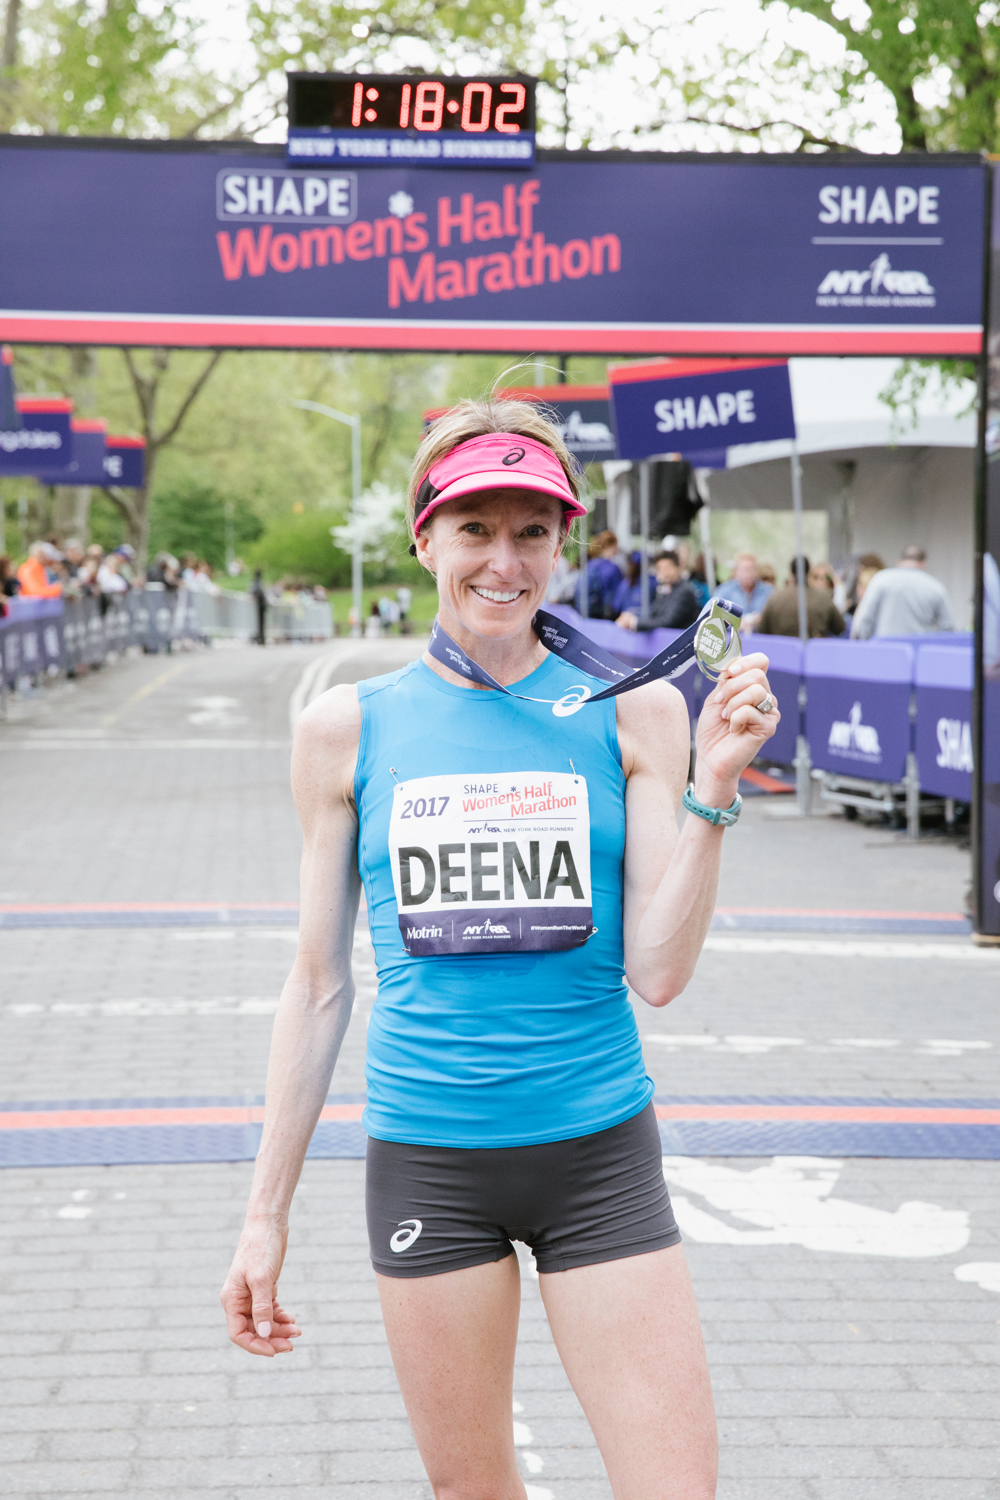 Deena Kastor finished first at the 2017 Shape Women's Half Marathon. This spring, she'll race 13.1 in a new borough.